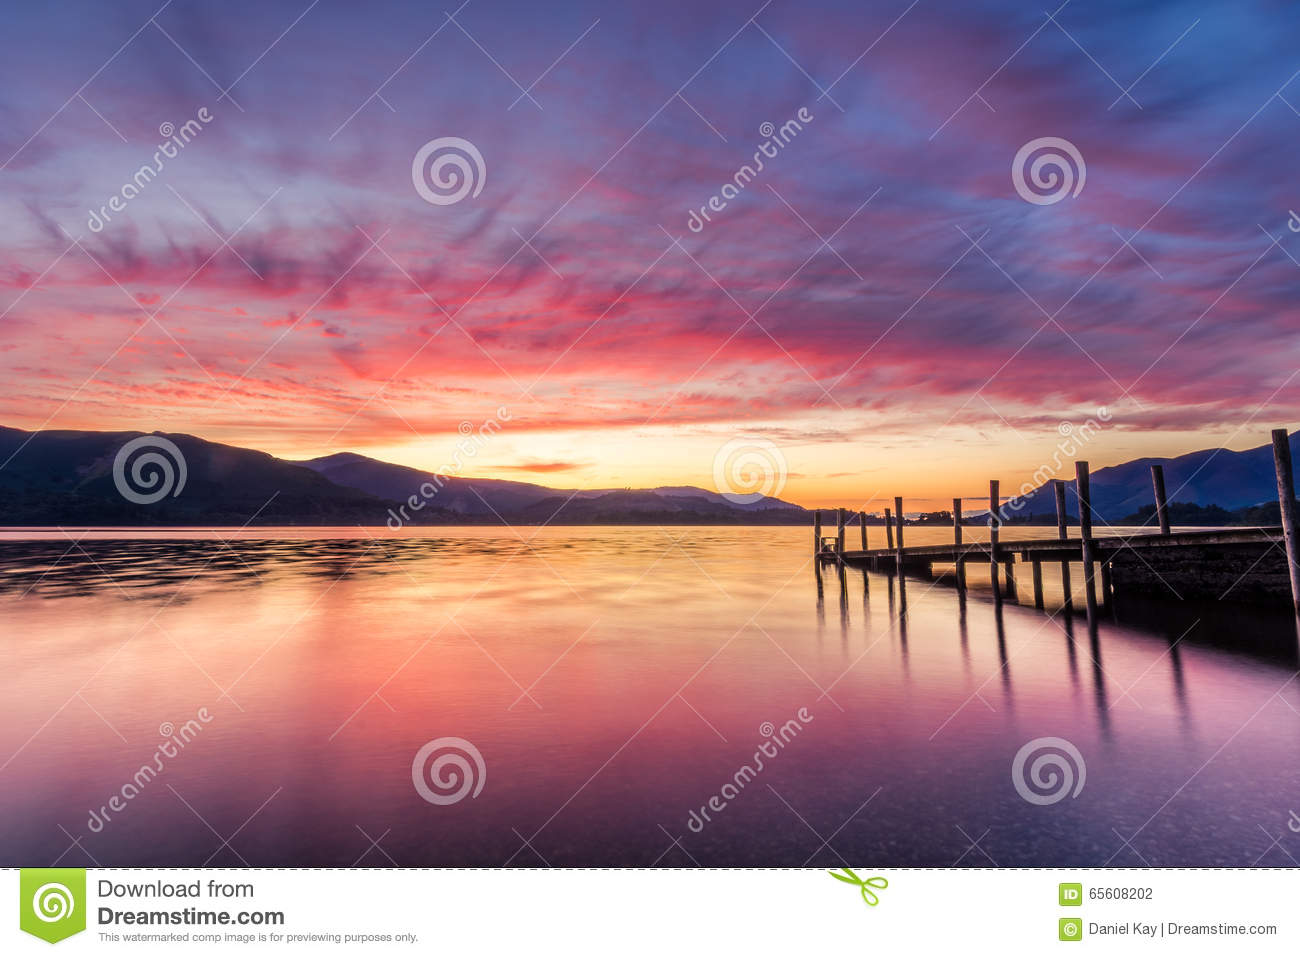 Stunning Vibrant Sunset At Ashness Jetty In Keswick, The Lake District, UK.